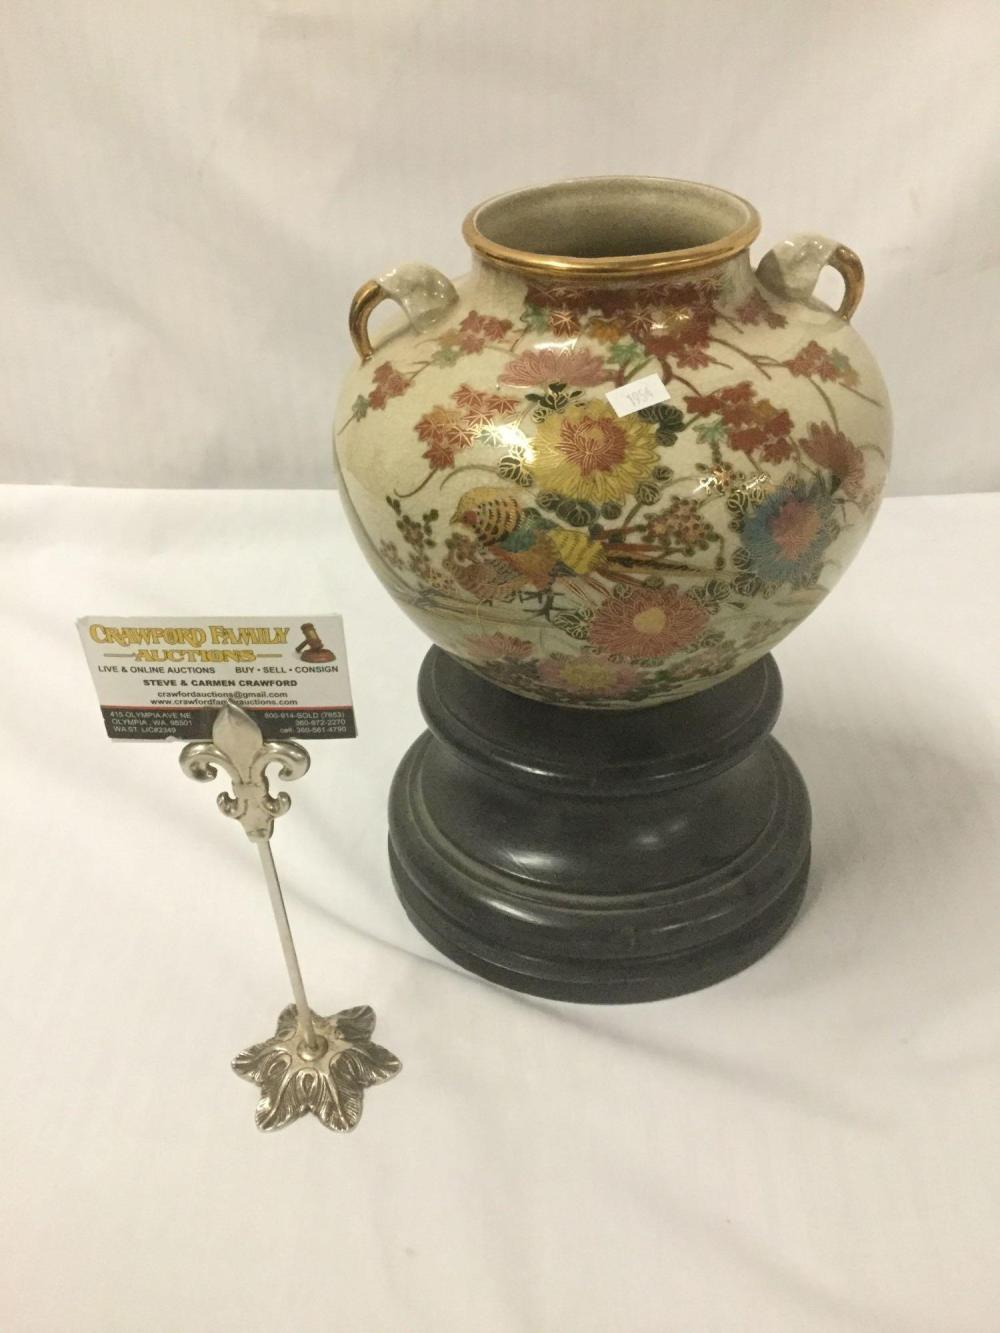 Lot 187: Famille rose Cloisonne porcelain vase with twin handles and gilt accents on a wood base